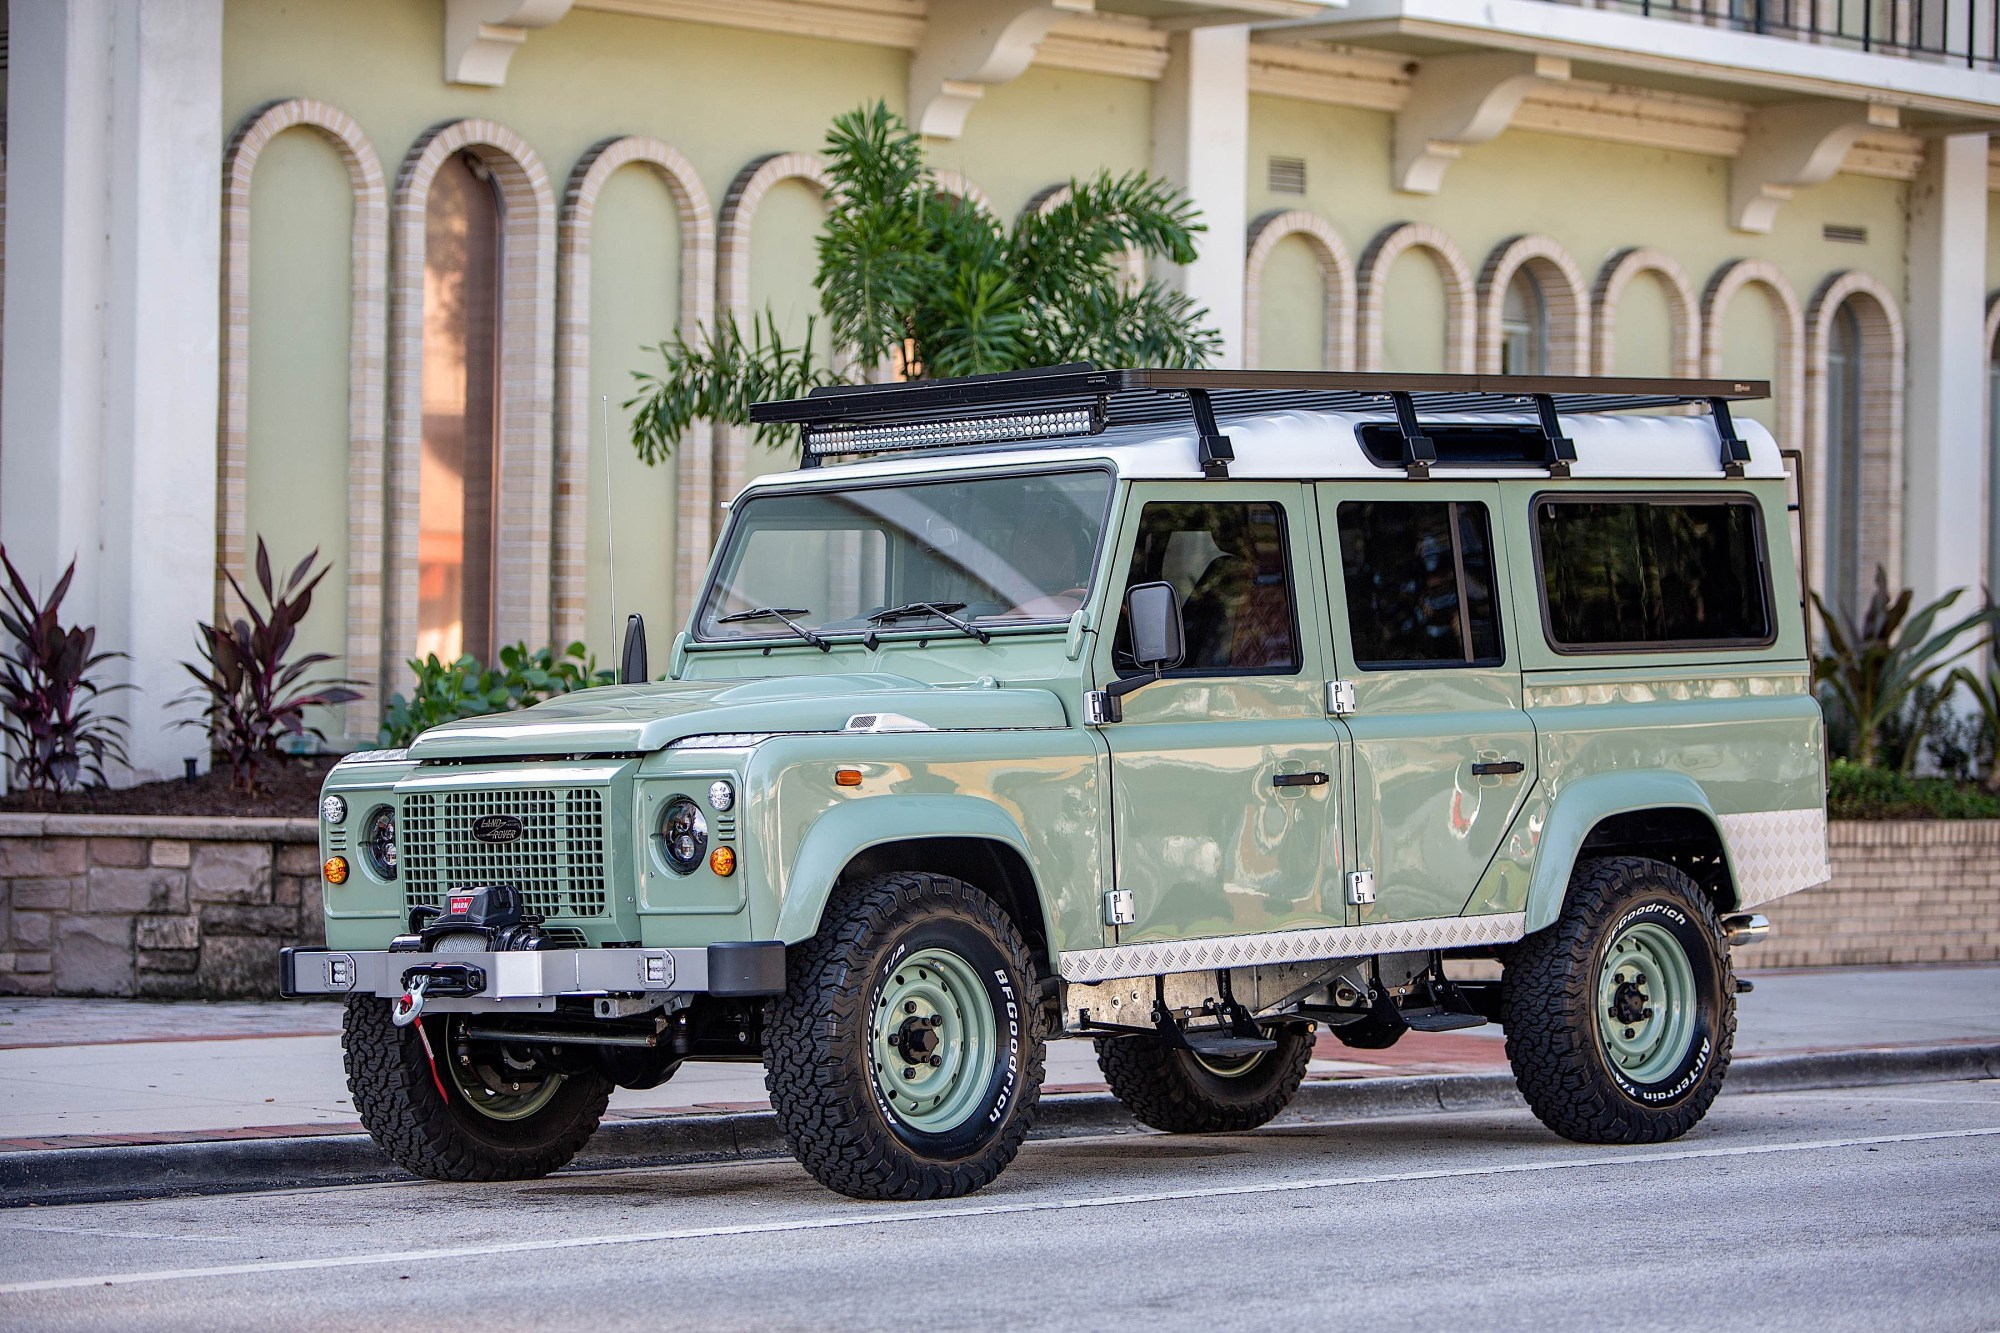 hight resolution of award winning custom land rover builder ecd automotive design has just unveiled specs on its latest d110 creation along with a handful of images of the